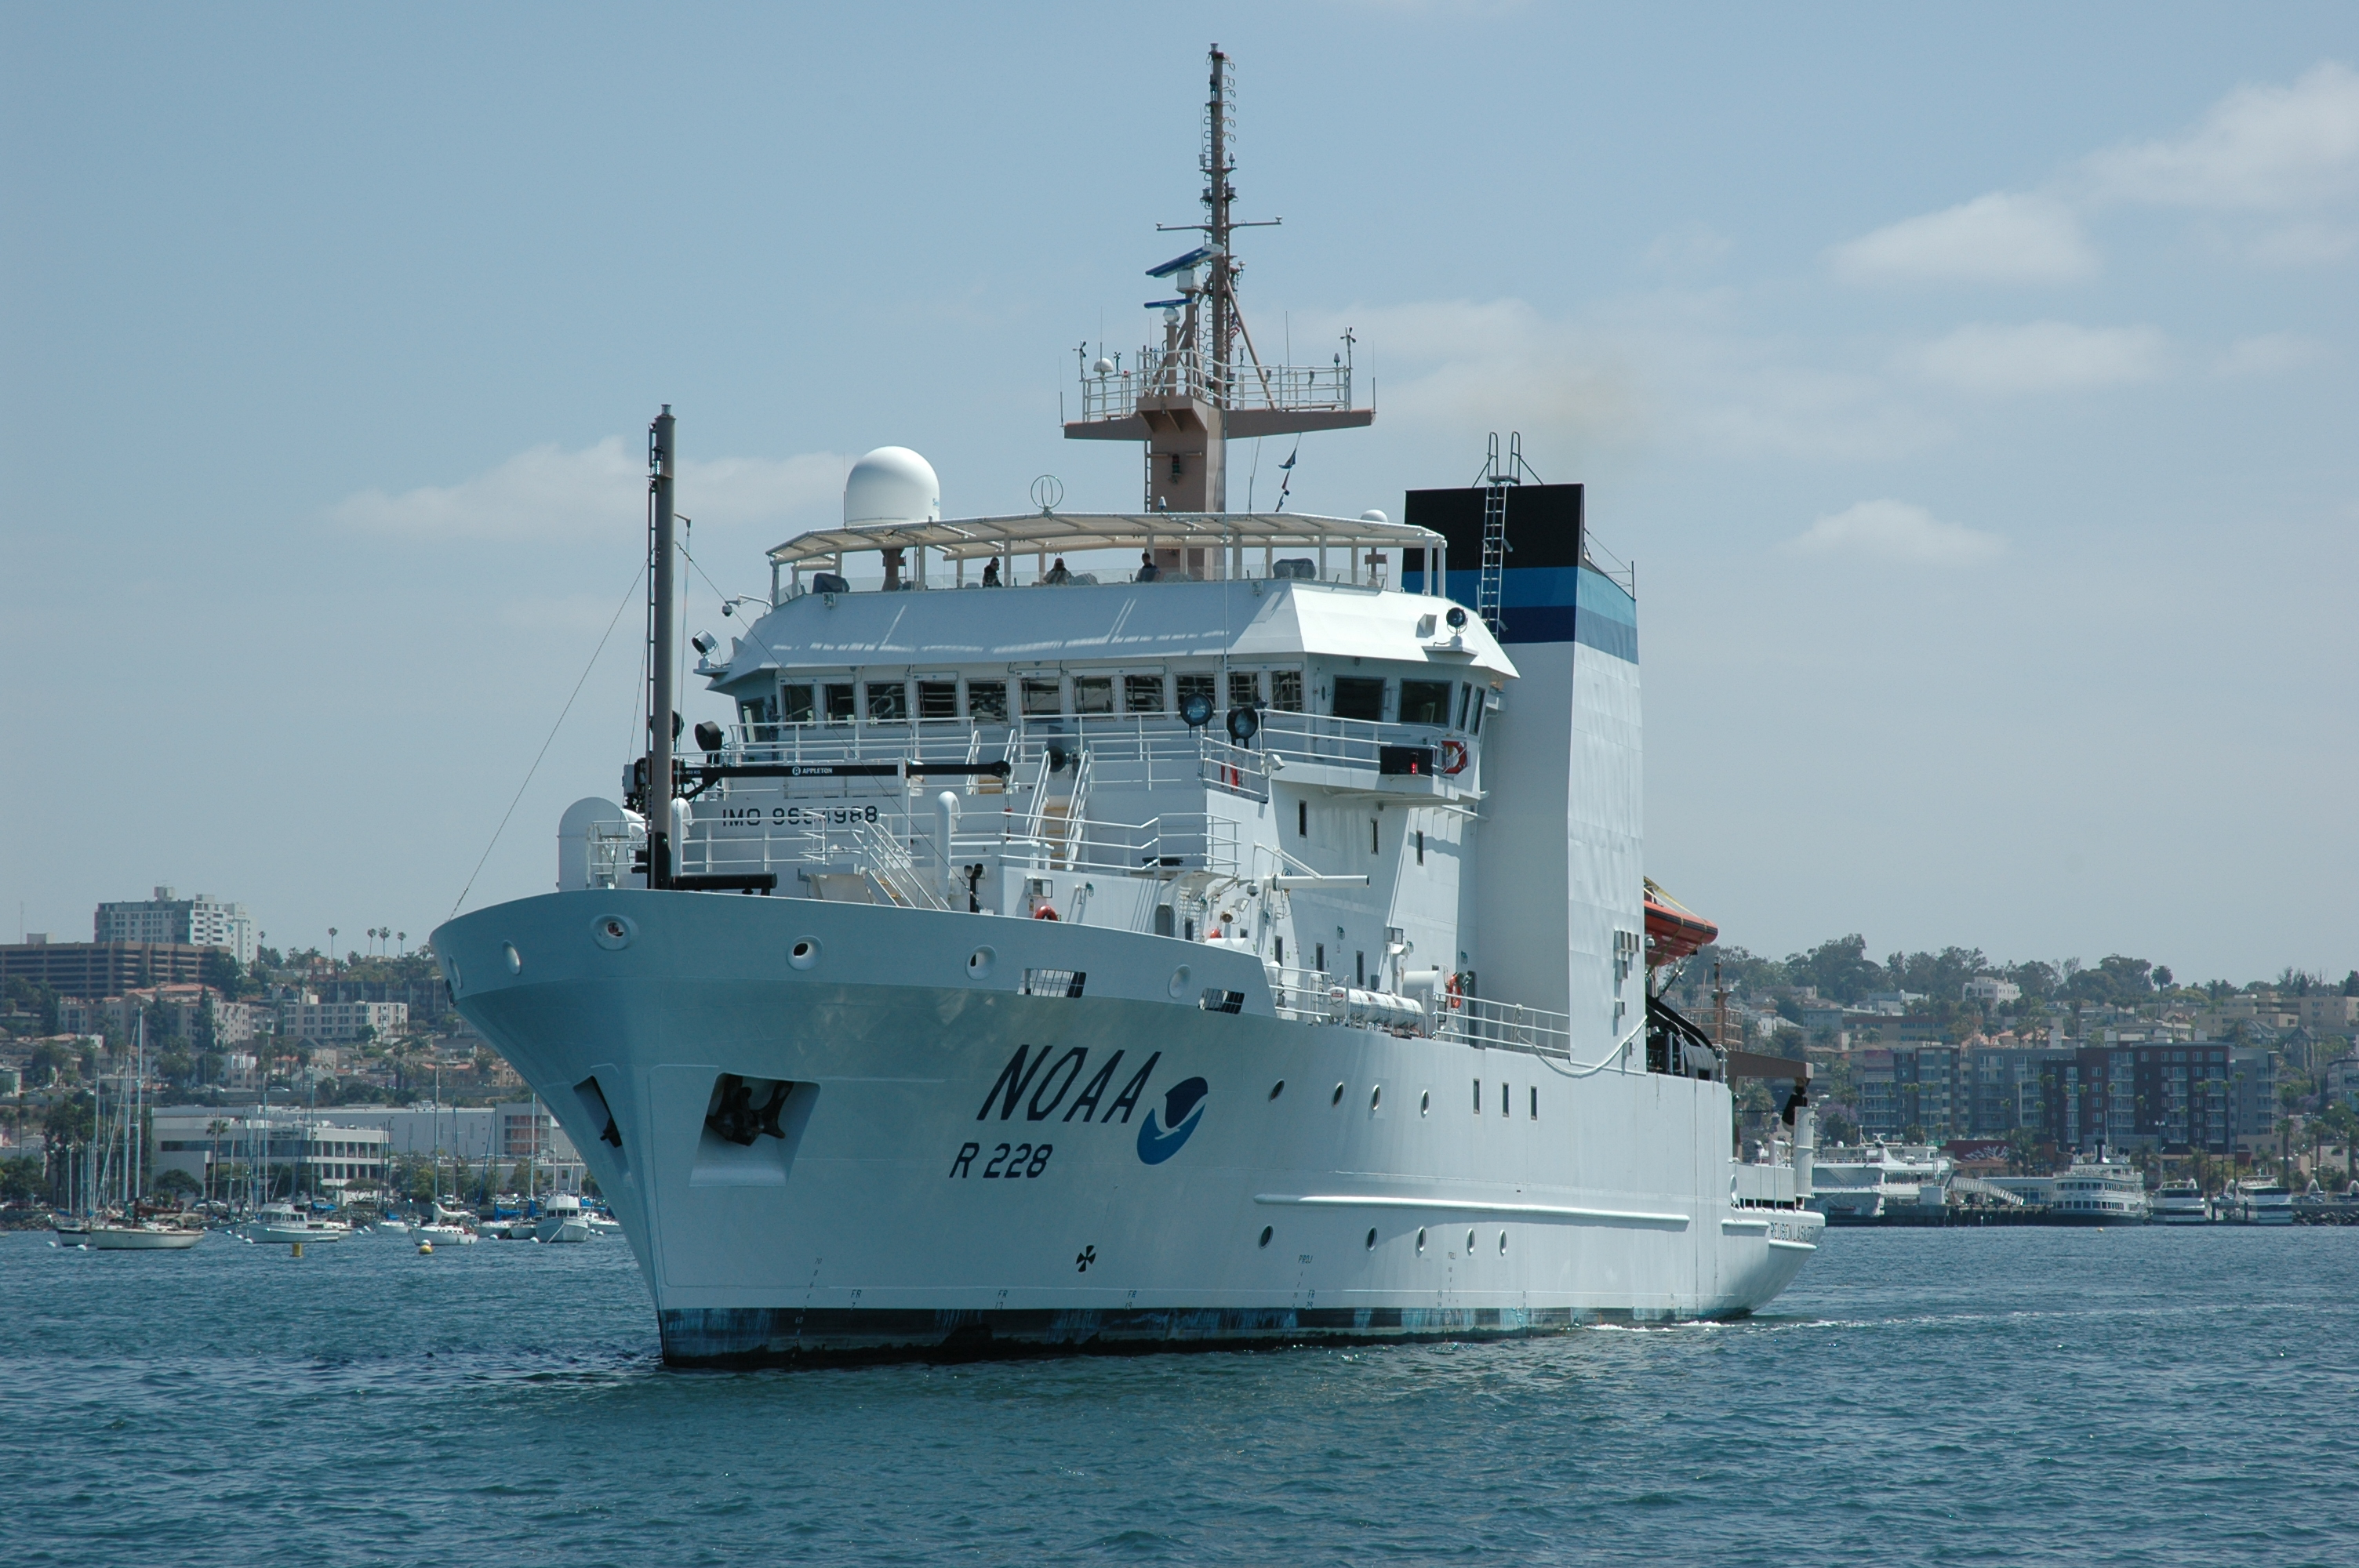 NOAA's newly commissioned Ruben Lasker sets out to sea